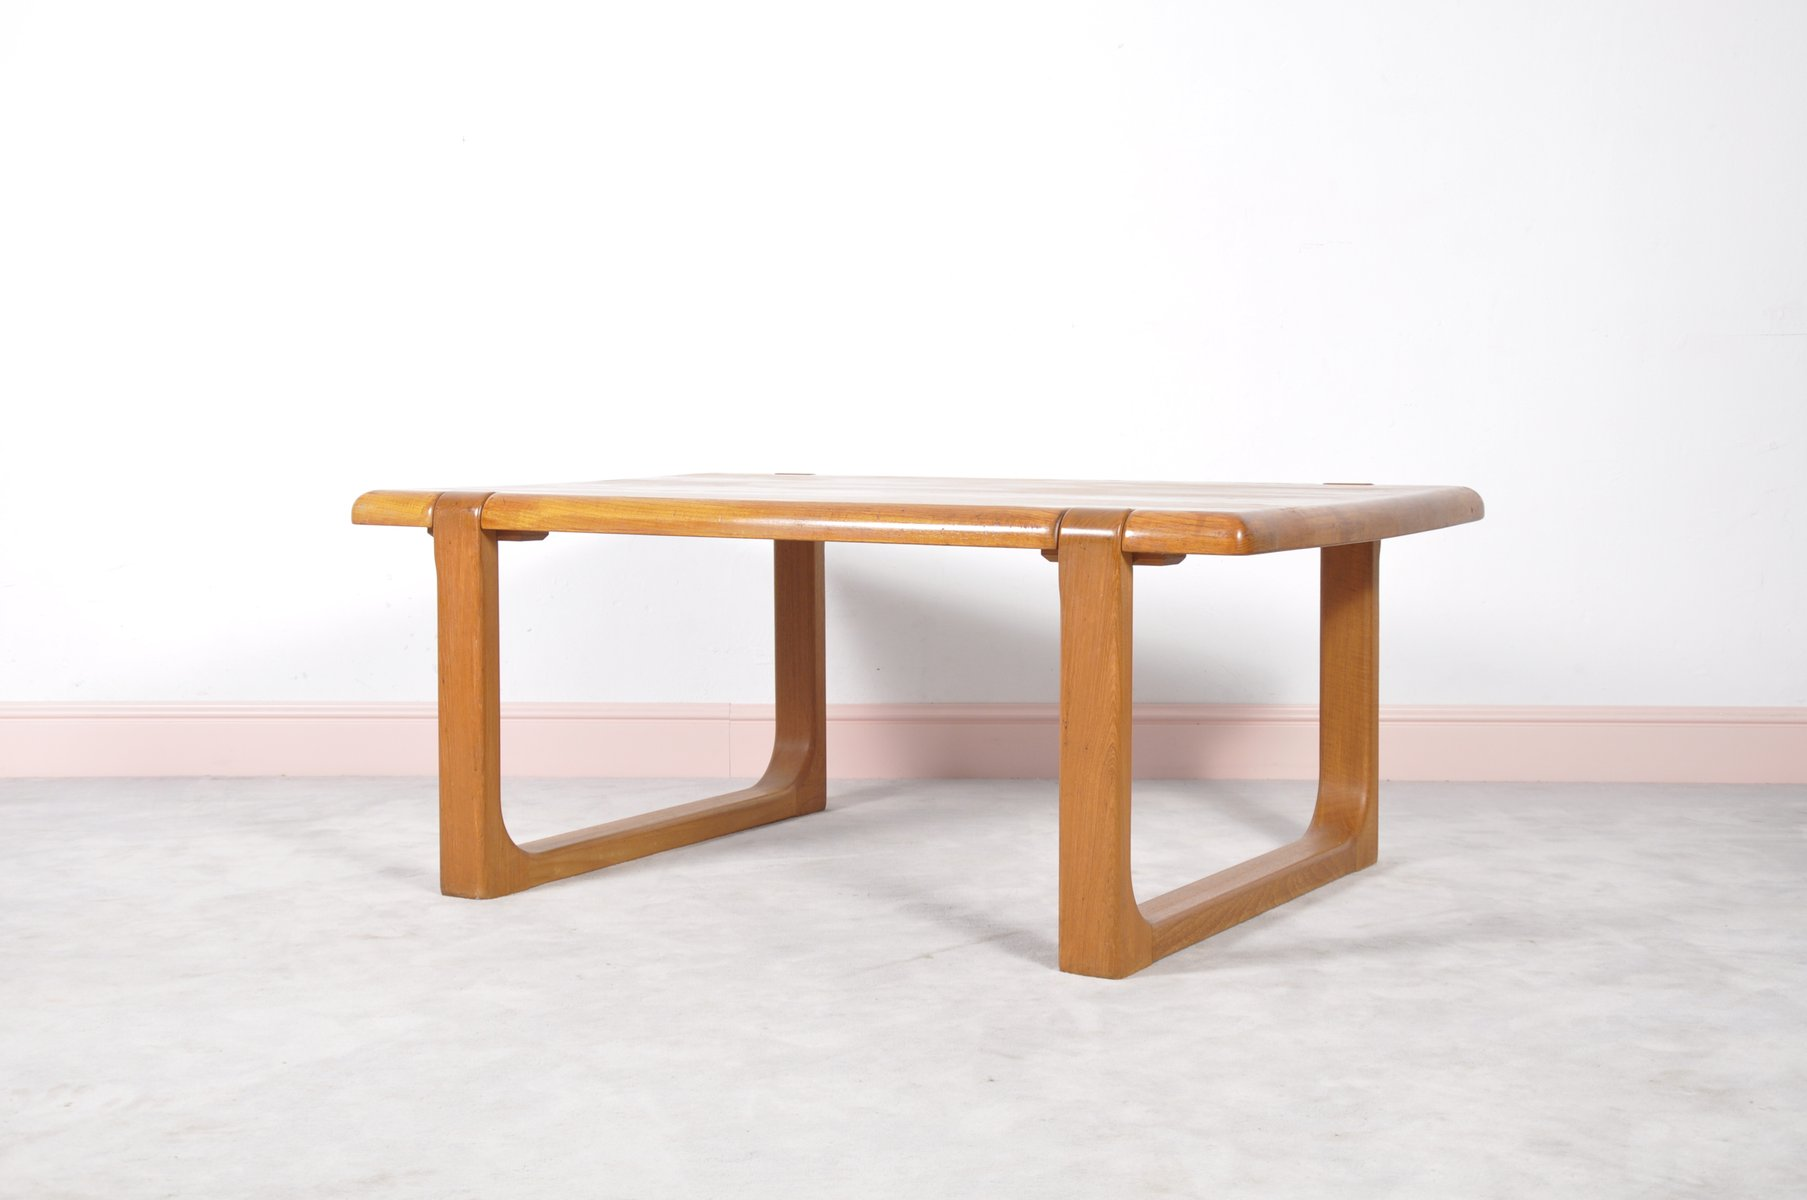 Danish Teak Coffee Table By Niels Bach 1960s For Sale At Pamono